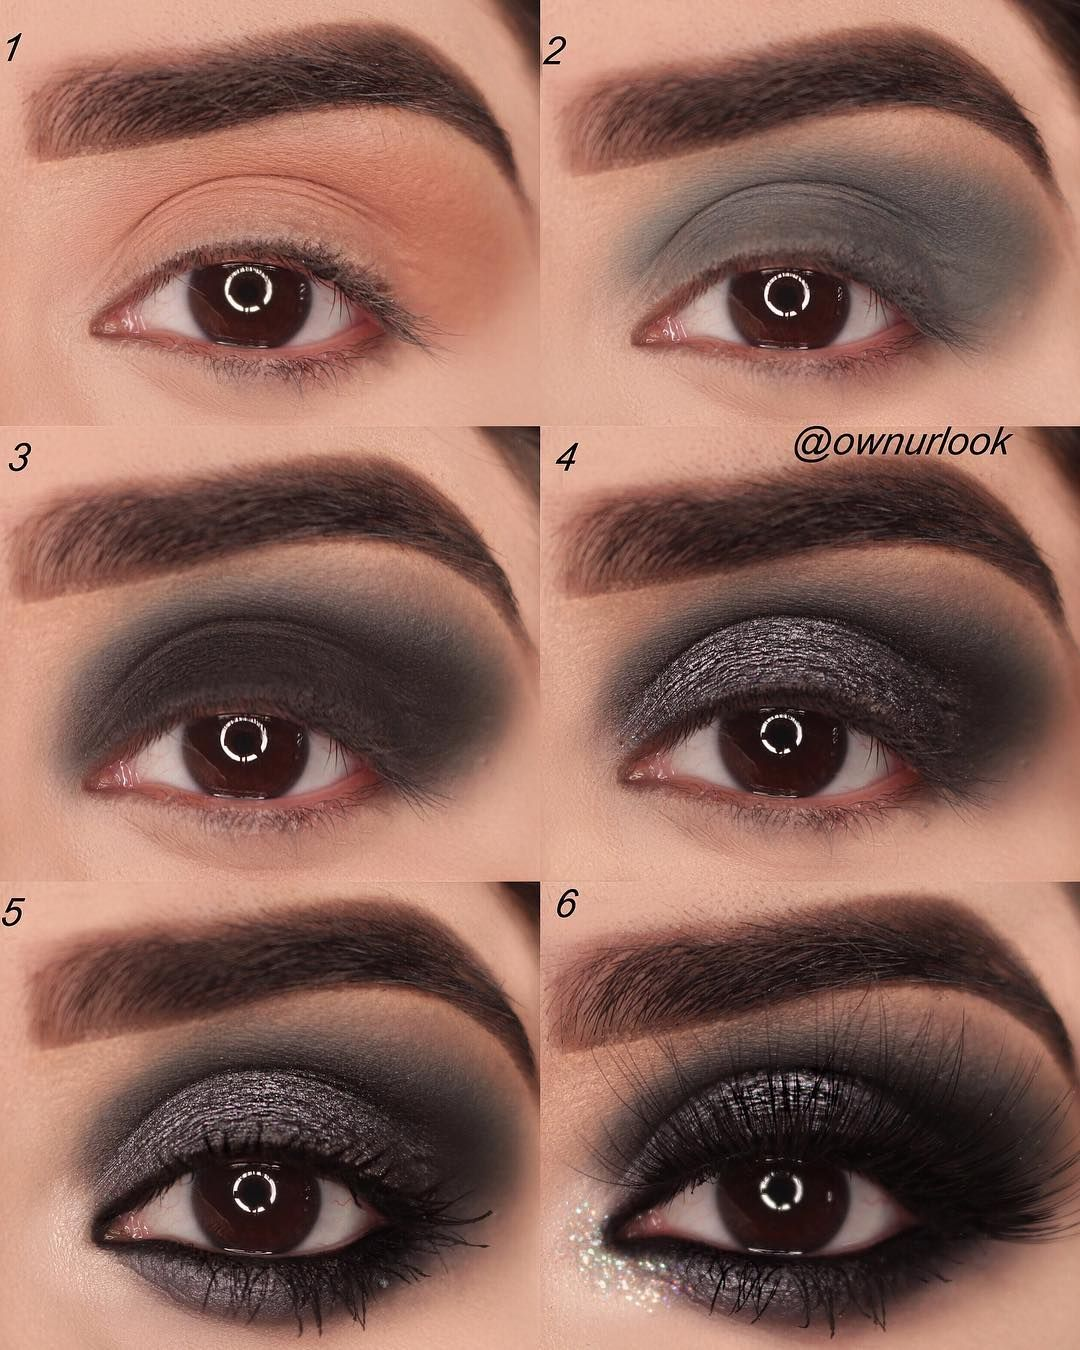 Hina On Instagram Lashes Www Dodolashes Com Use Code Star For A 10 Discou 90s Makeup Look 90s Makeup Grunge Makeup Tutorial